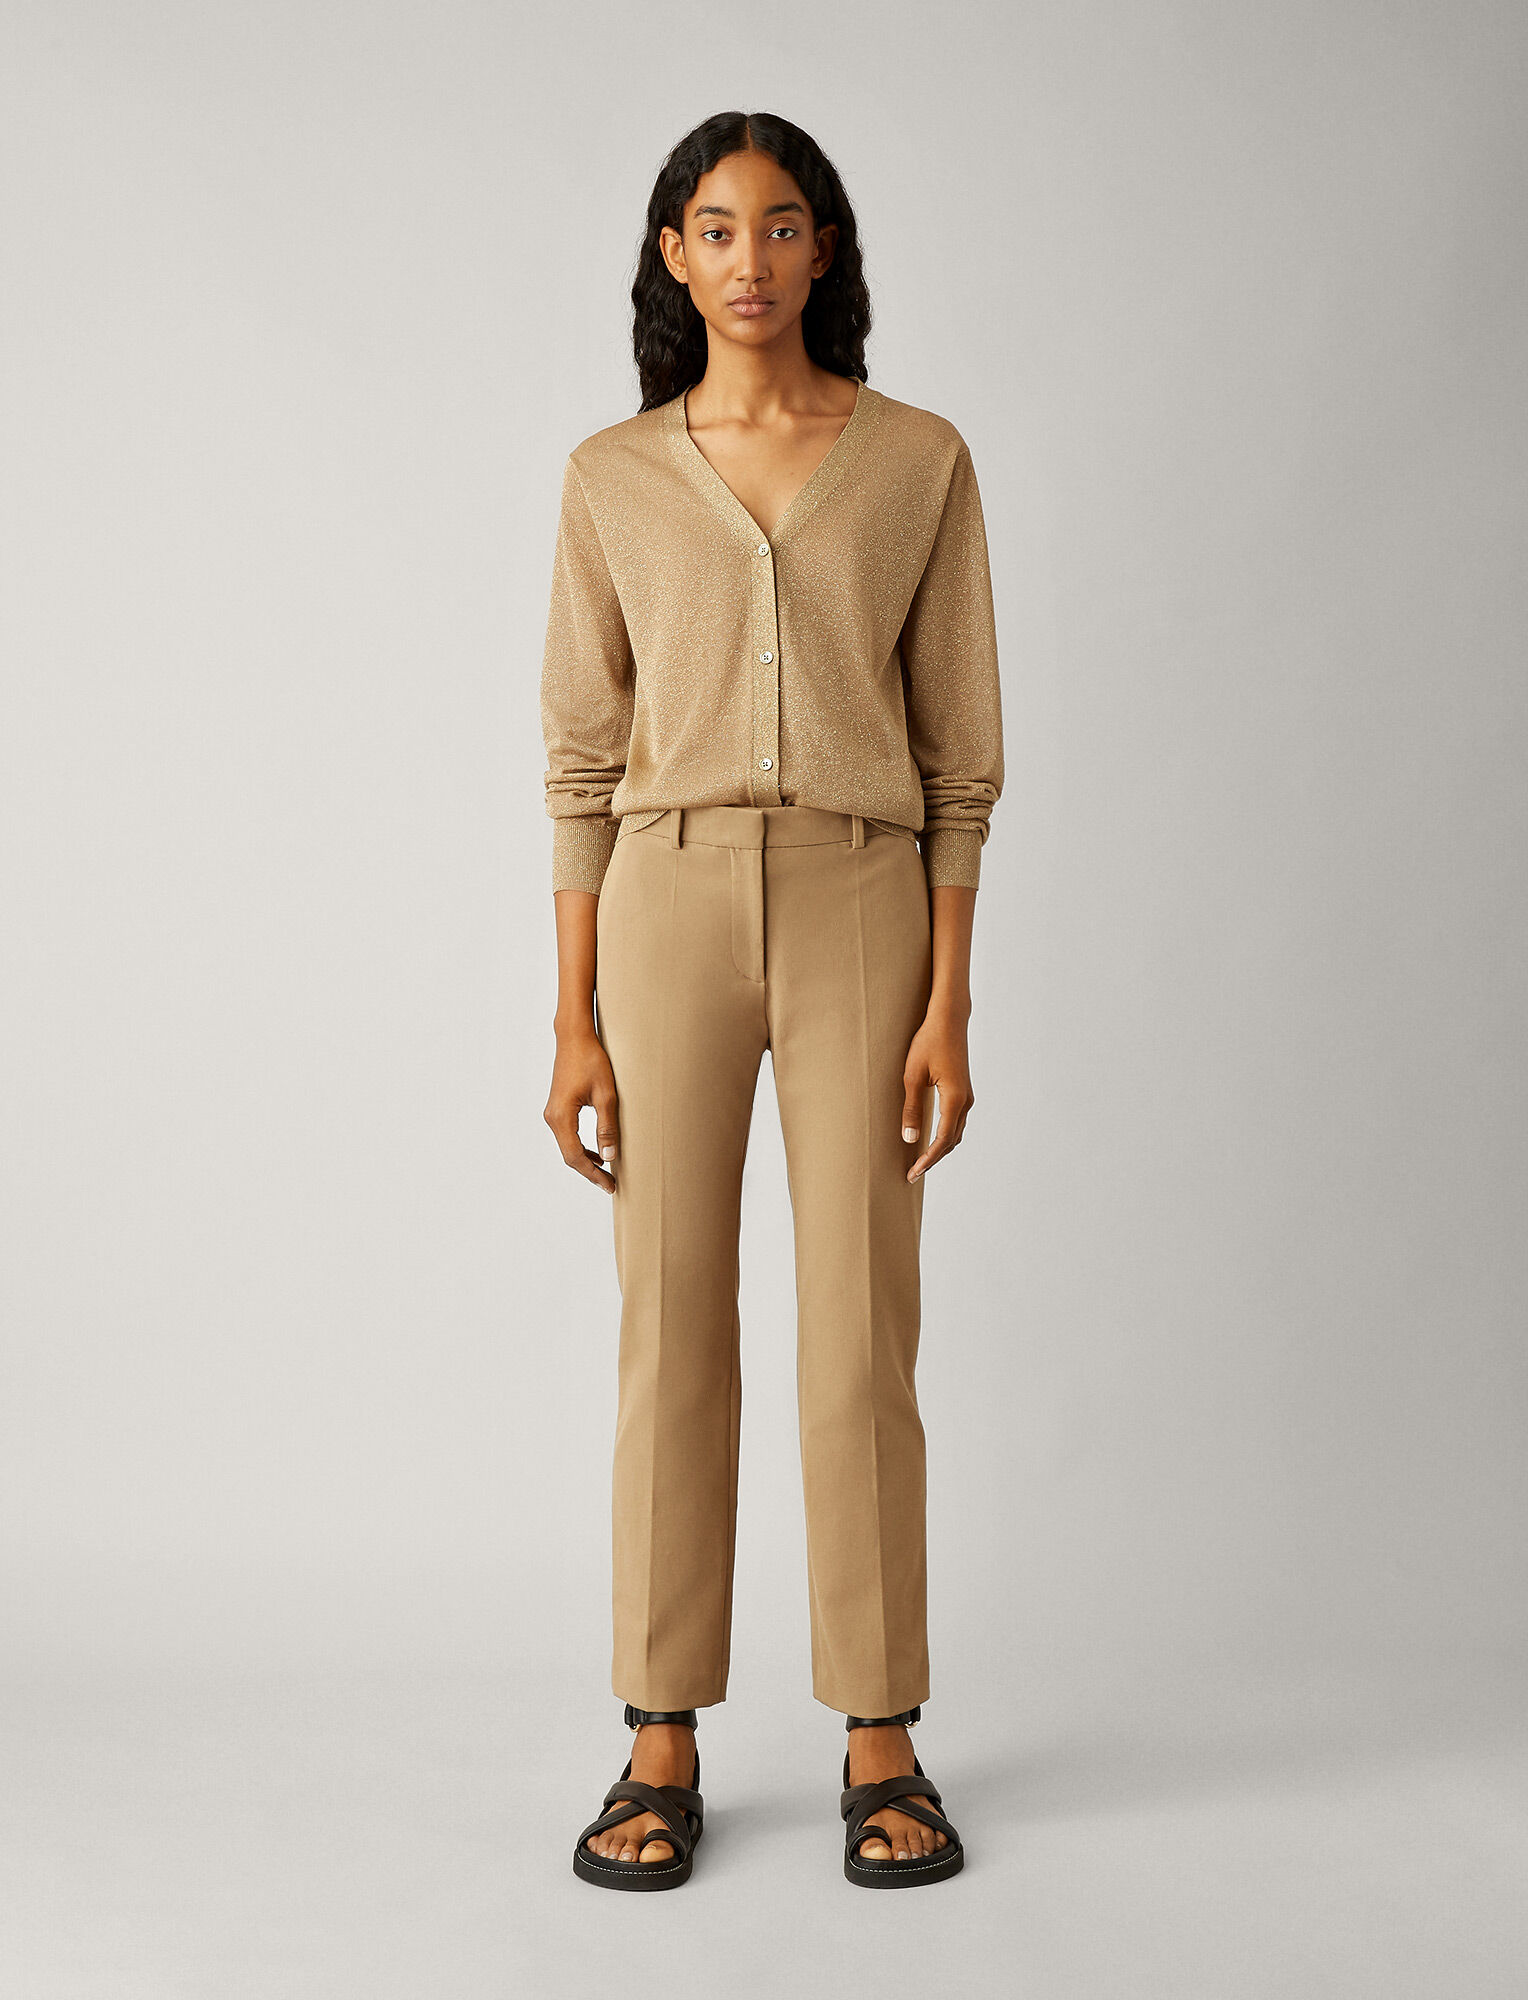 Joseph, Coleman Gabardine Stretch Trousers, in CAMEL